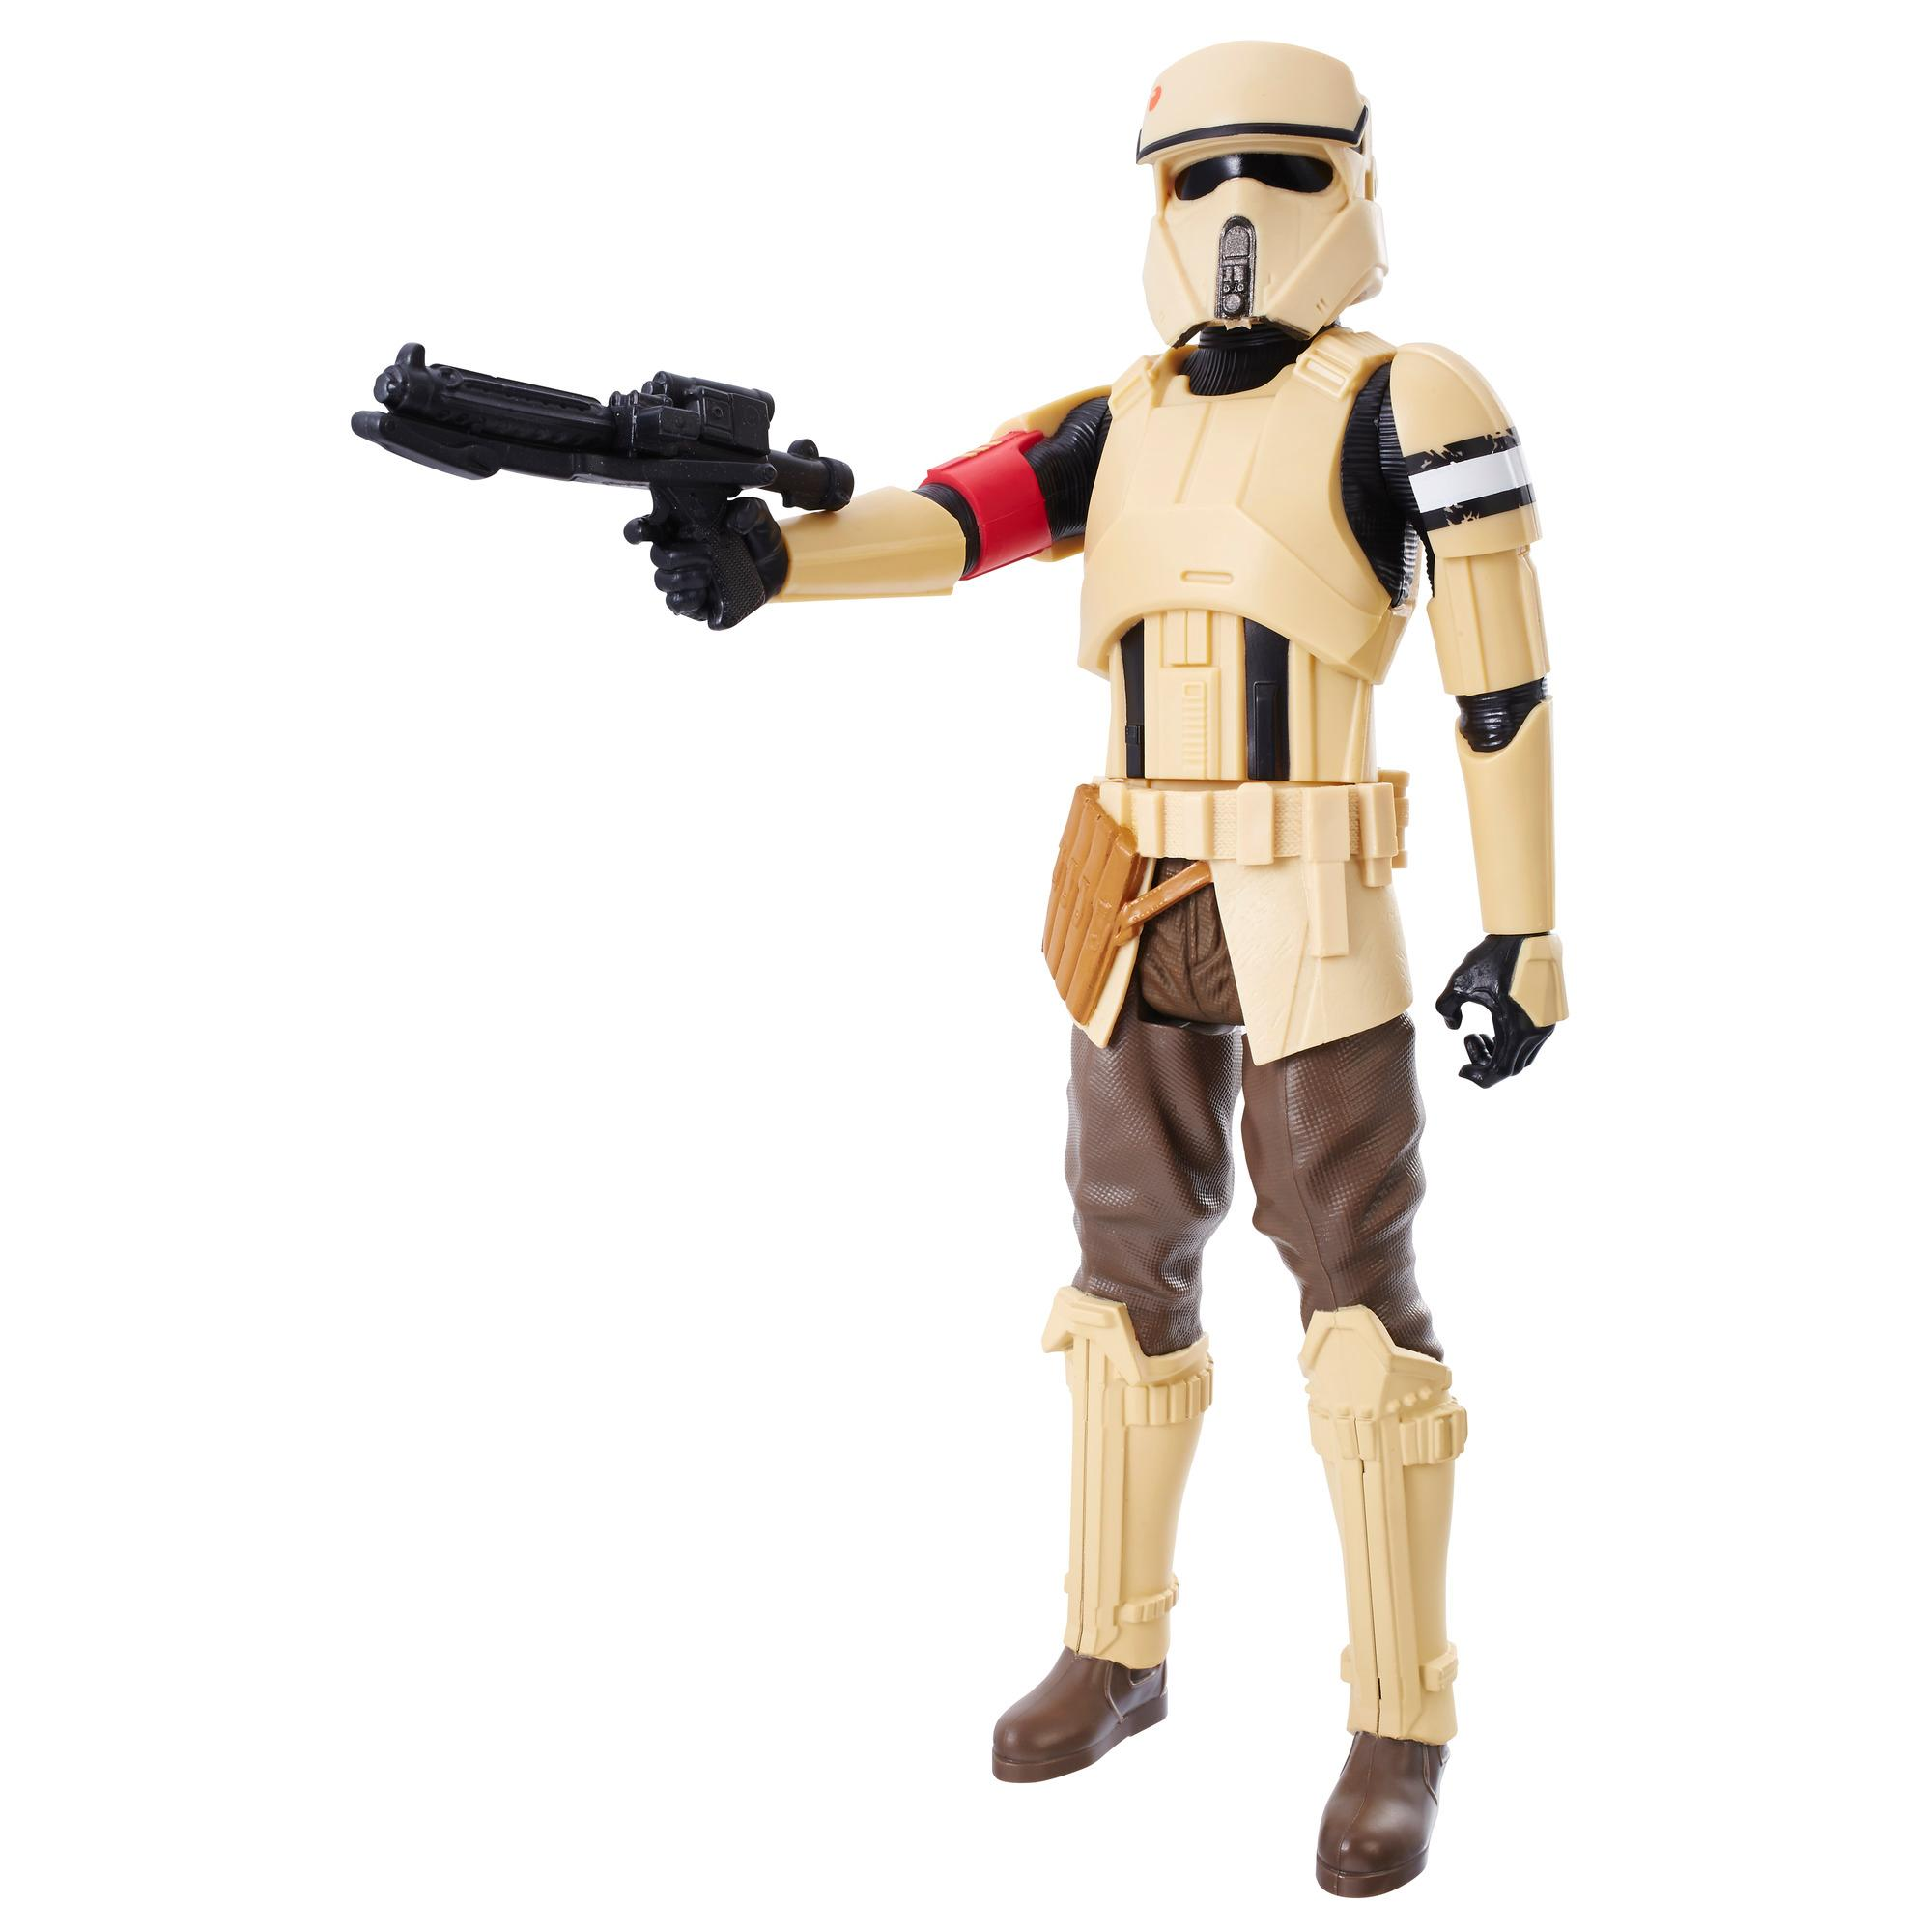 Star Wars Rogue One 12-inch Shoretrooper Figure